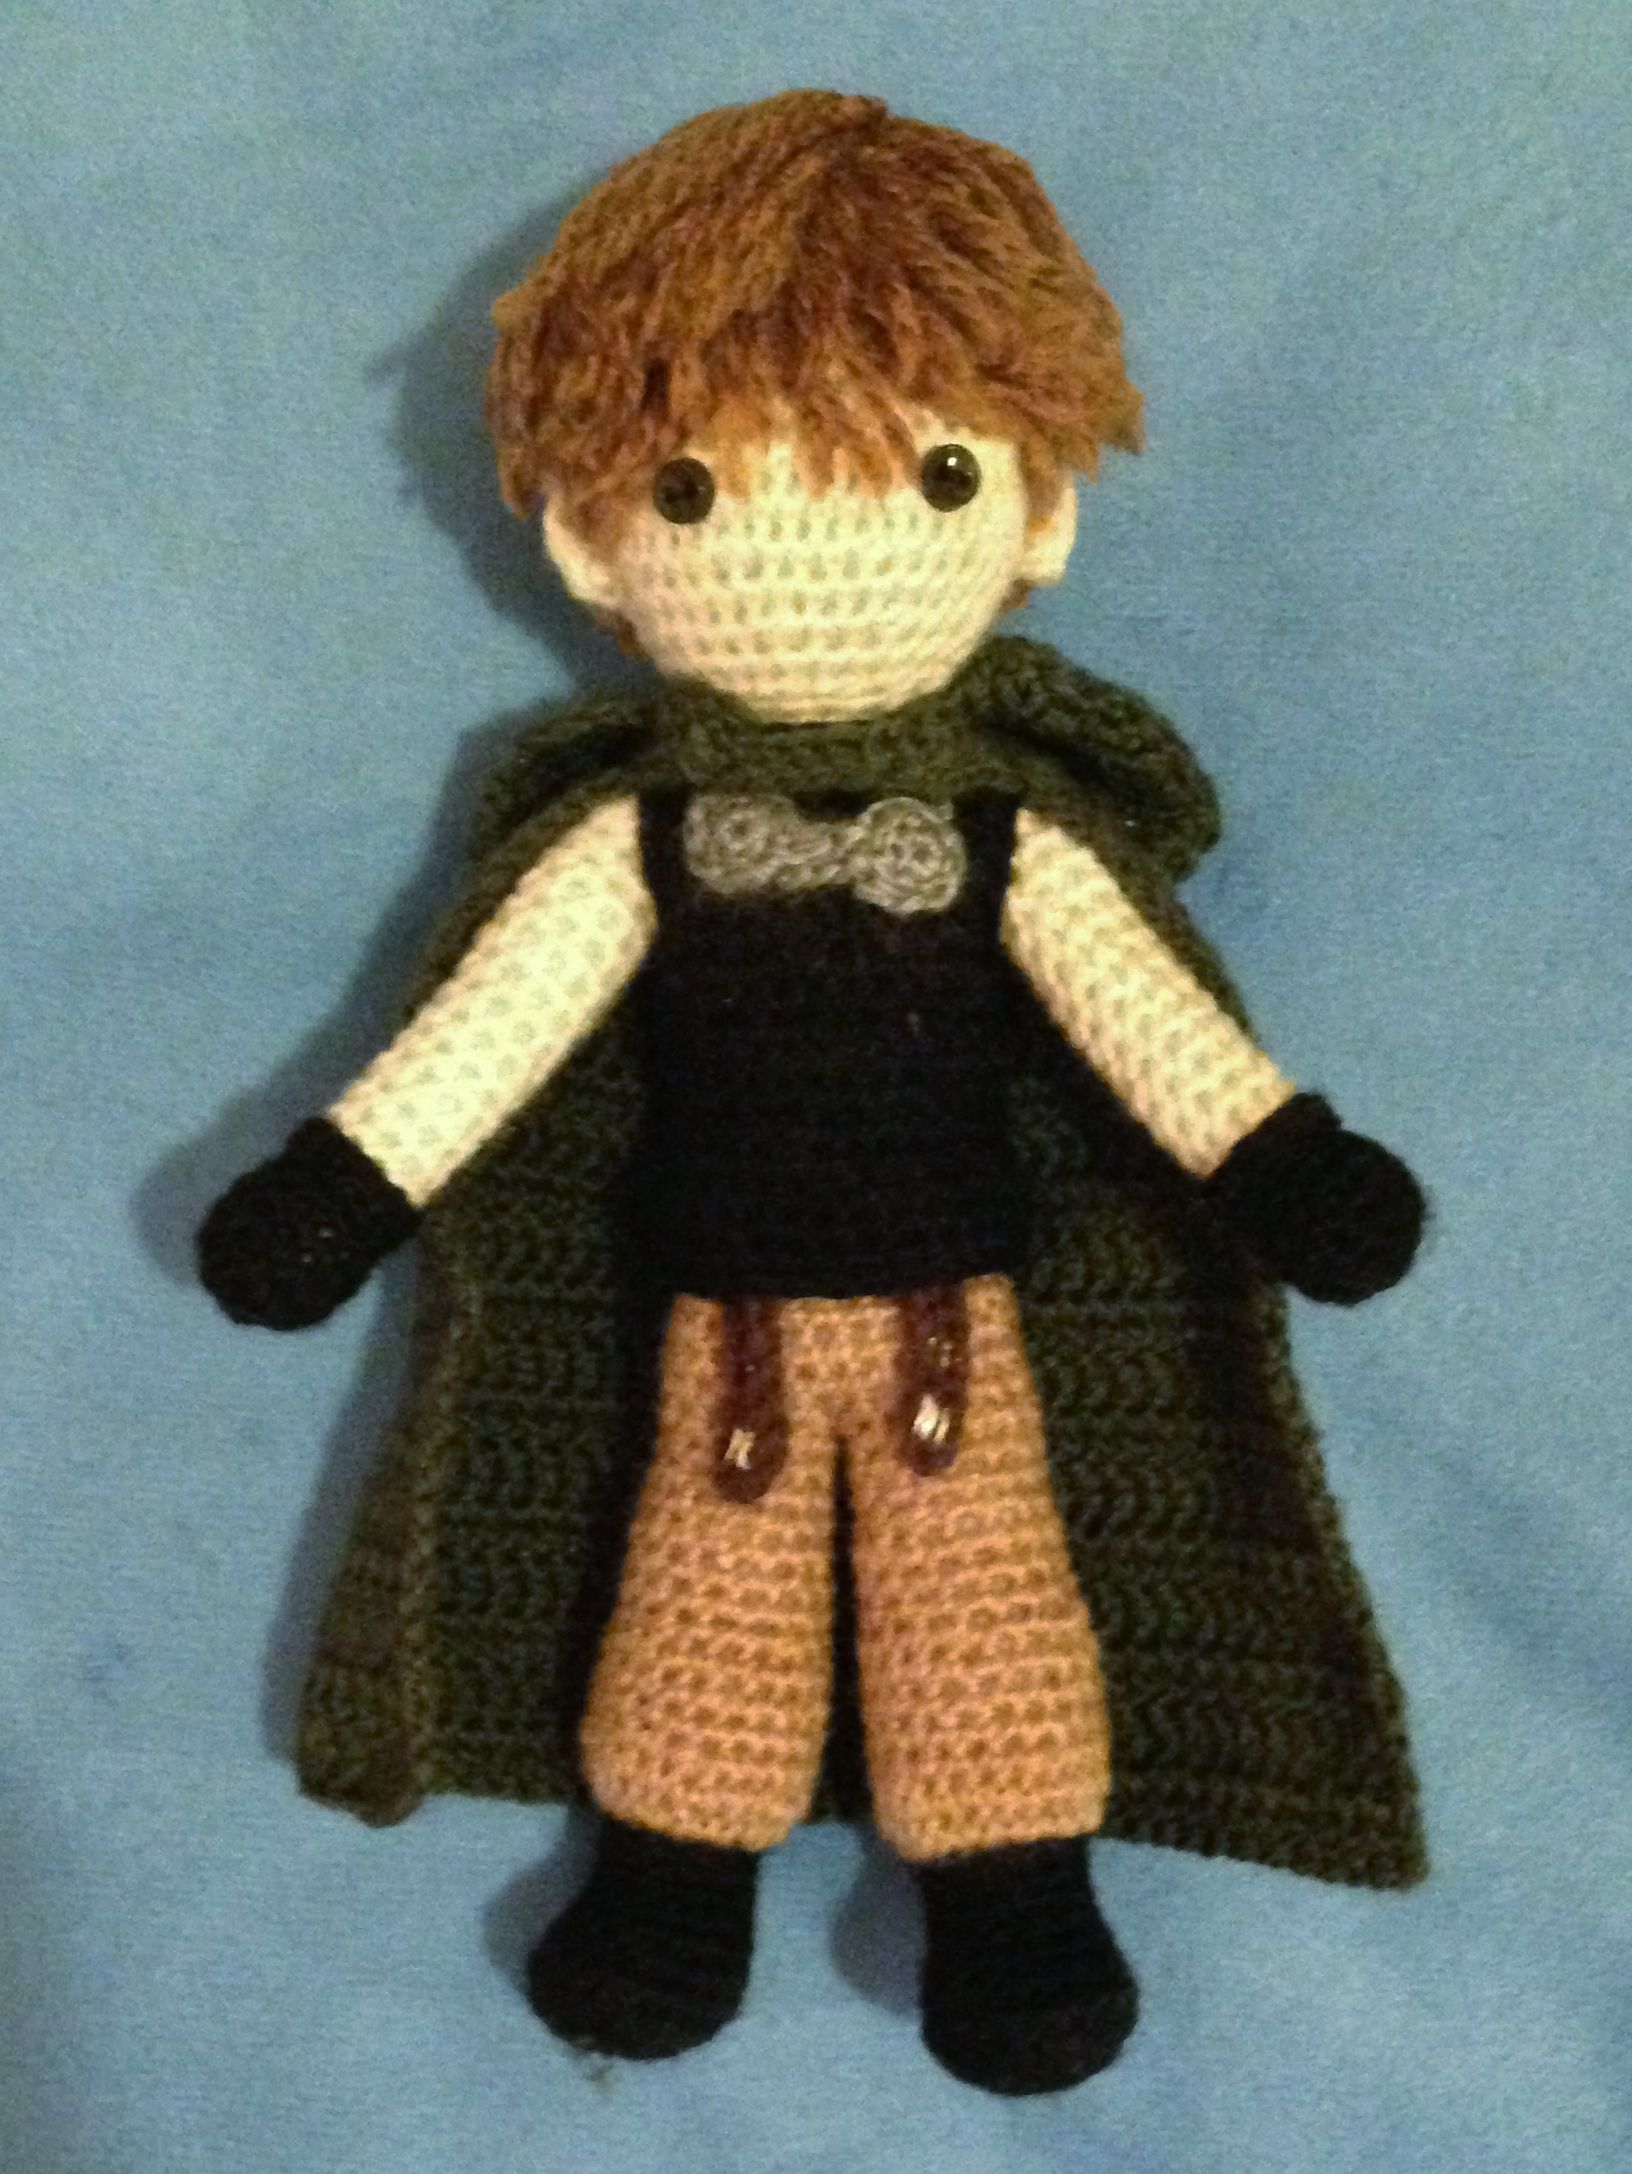 hashtags in 2020 | Crochet dolls free patterns, Free crochet ... | 2174x1632